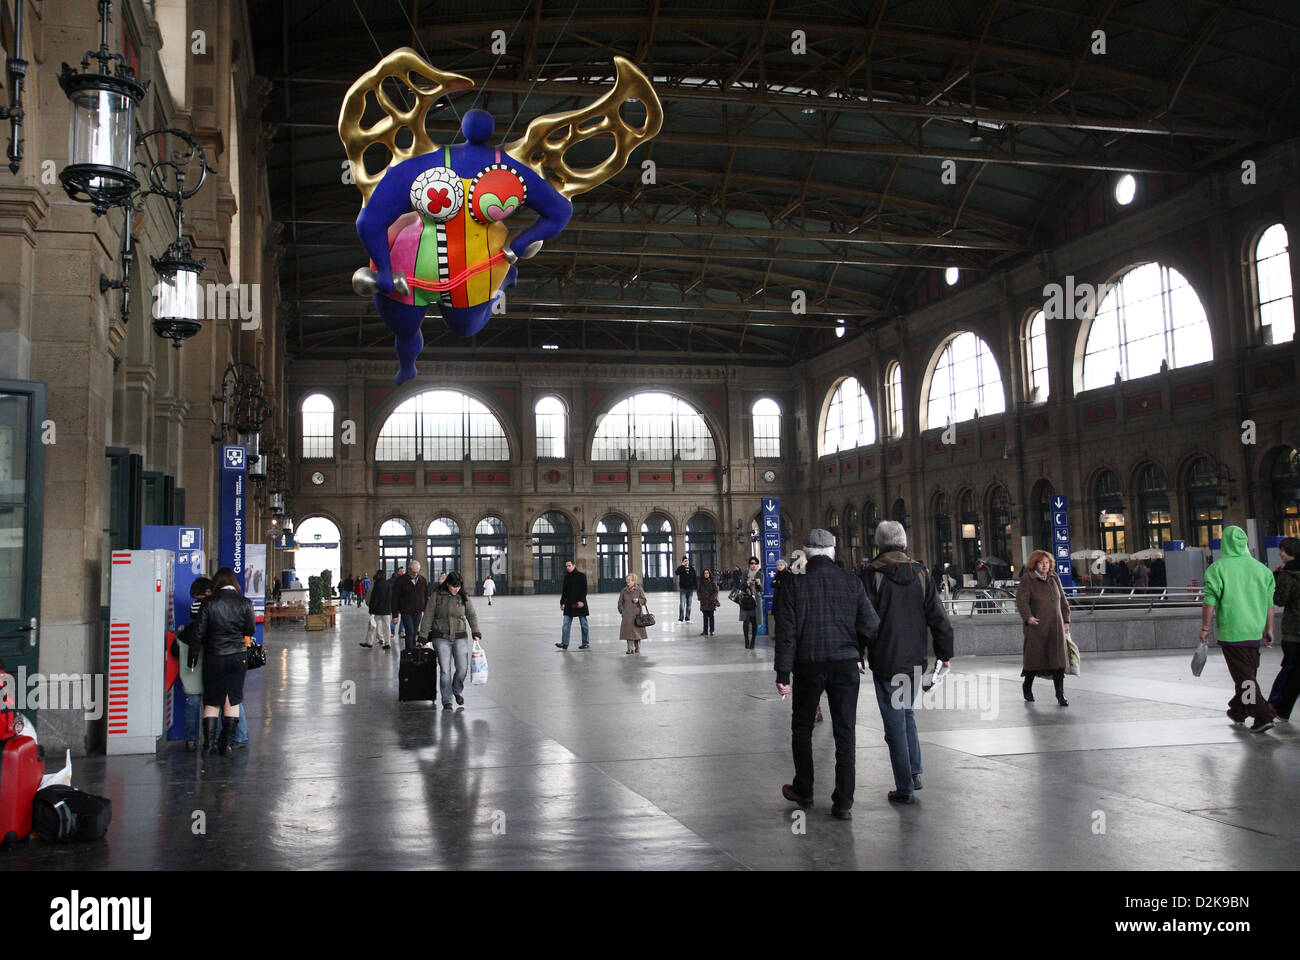 Zurich, Switzerland, in the main station entrance hall with Blue Angel - Stock Image